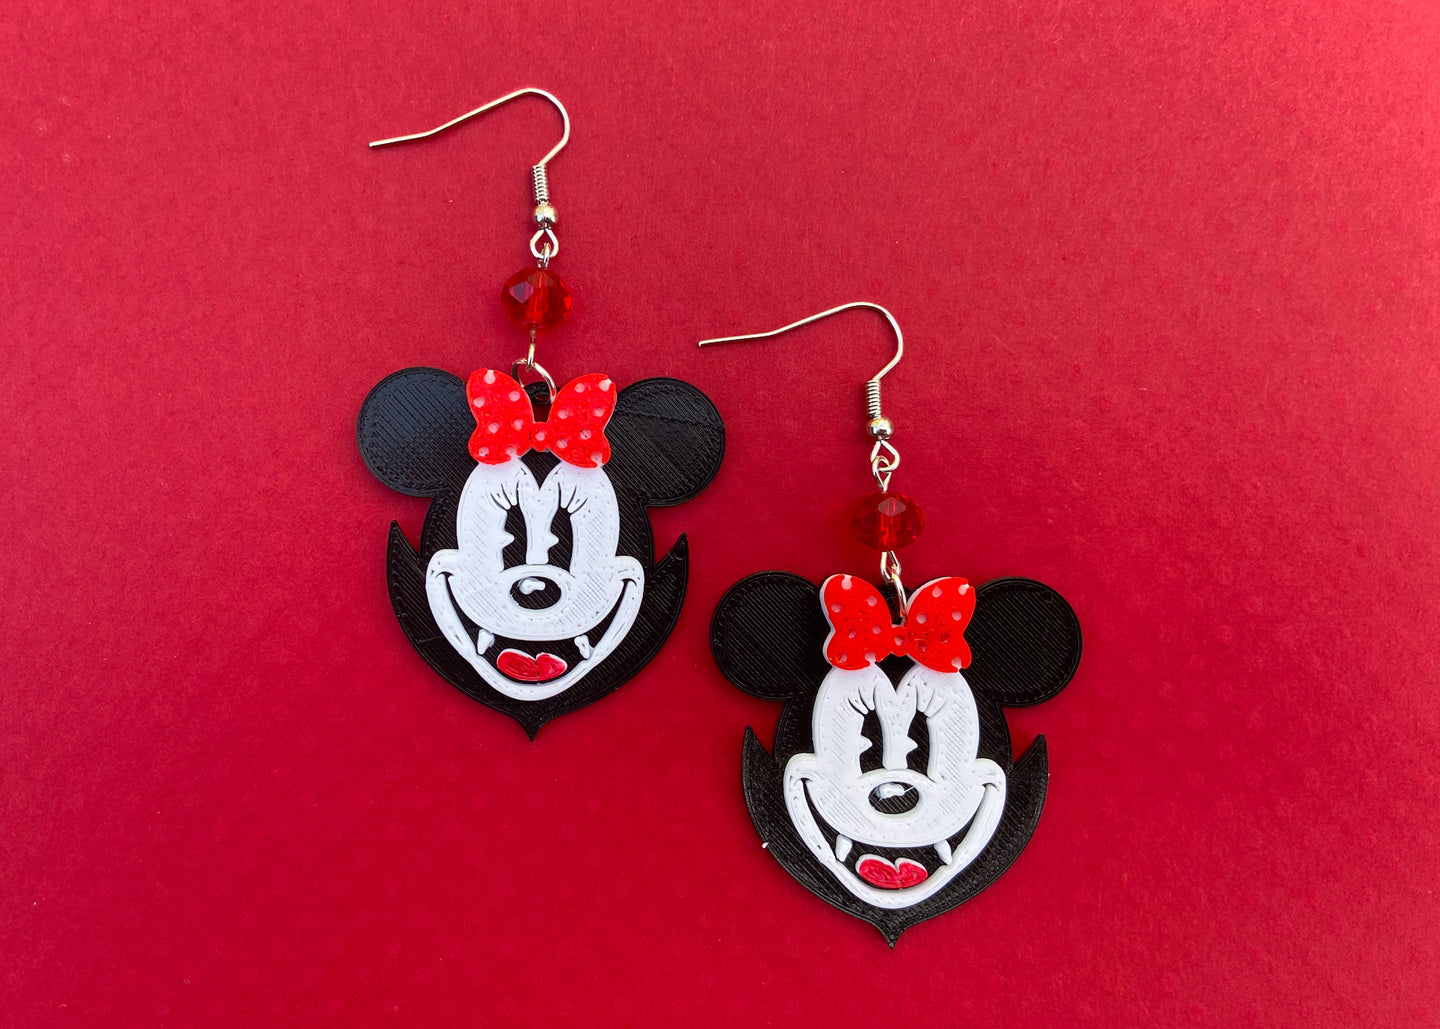 Vampire Ms. Mouse Earrings